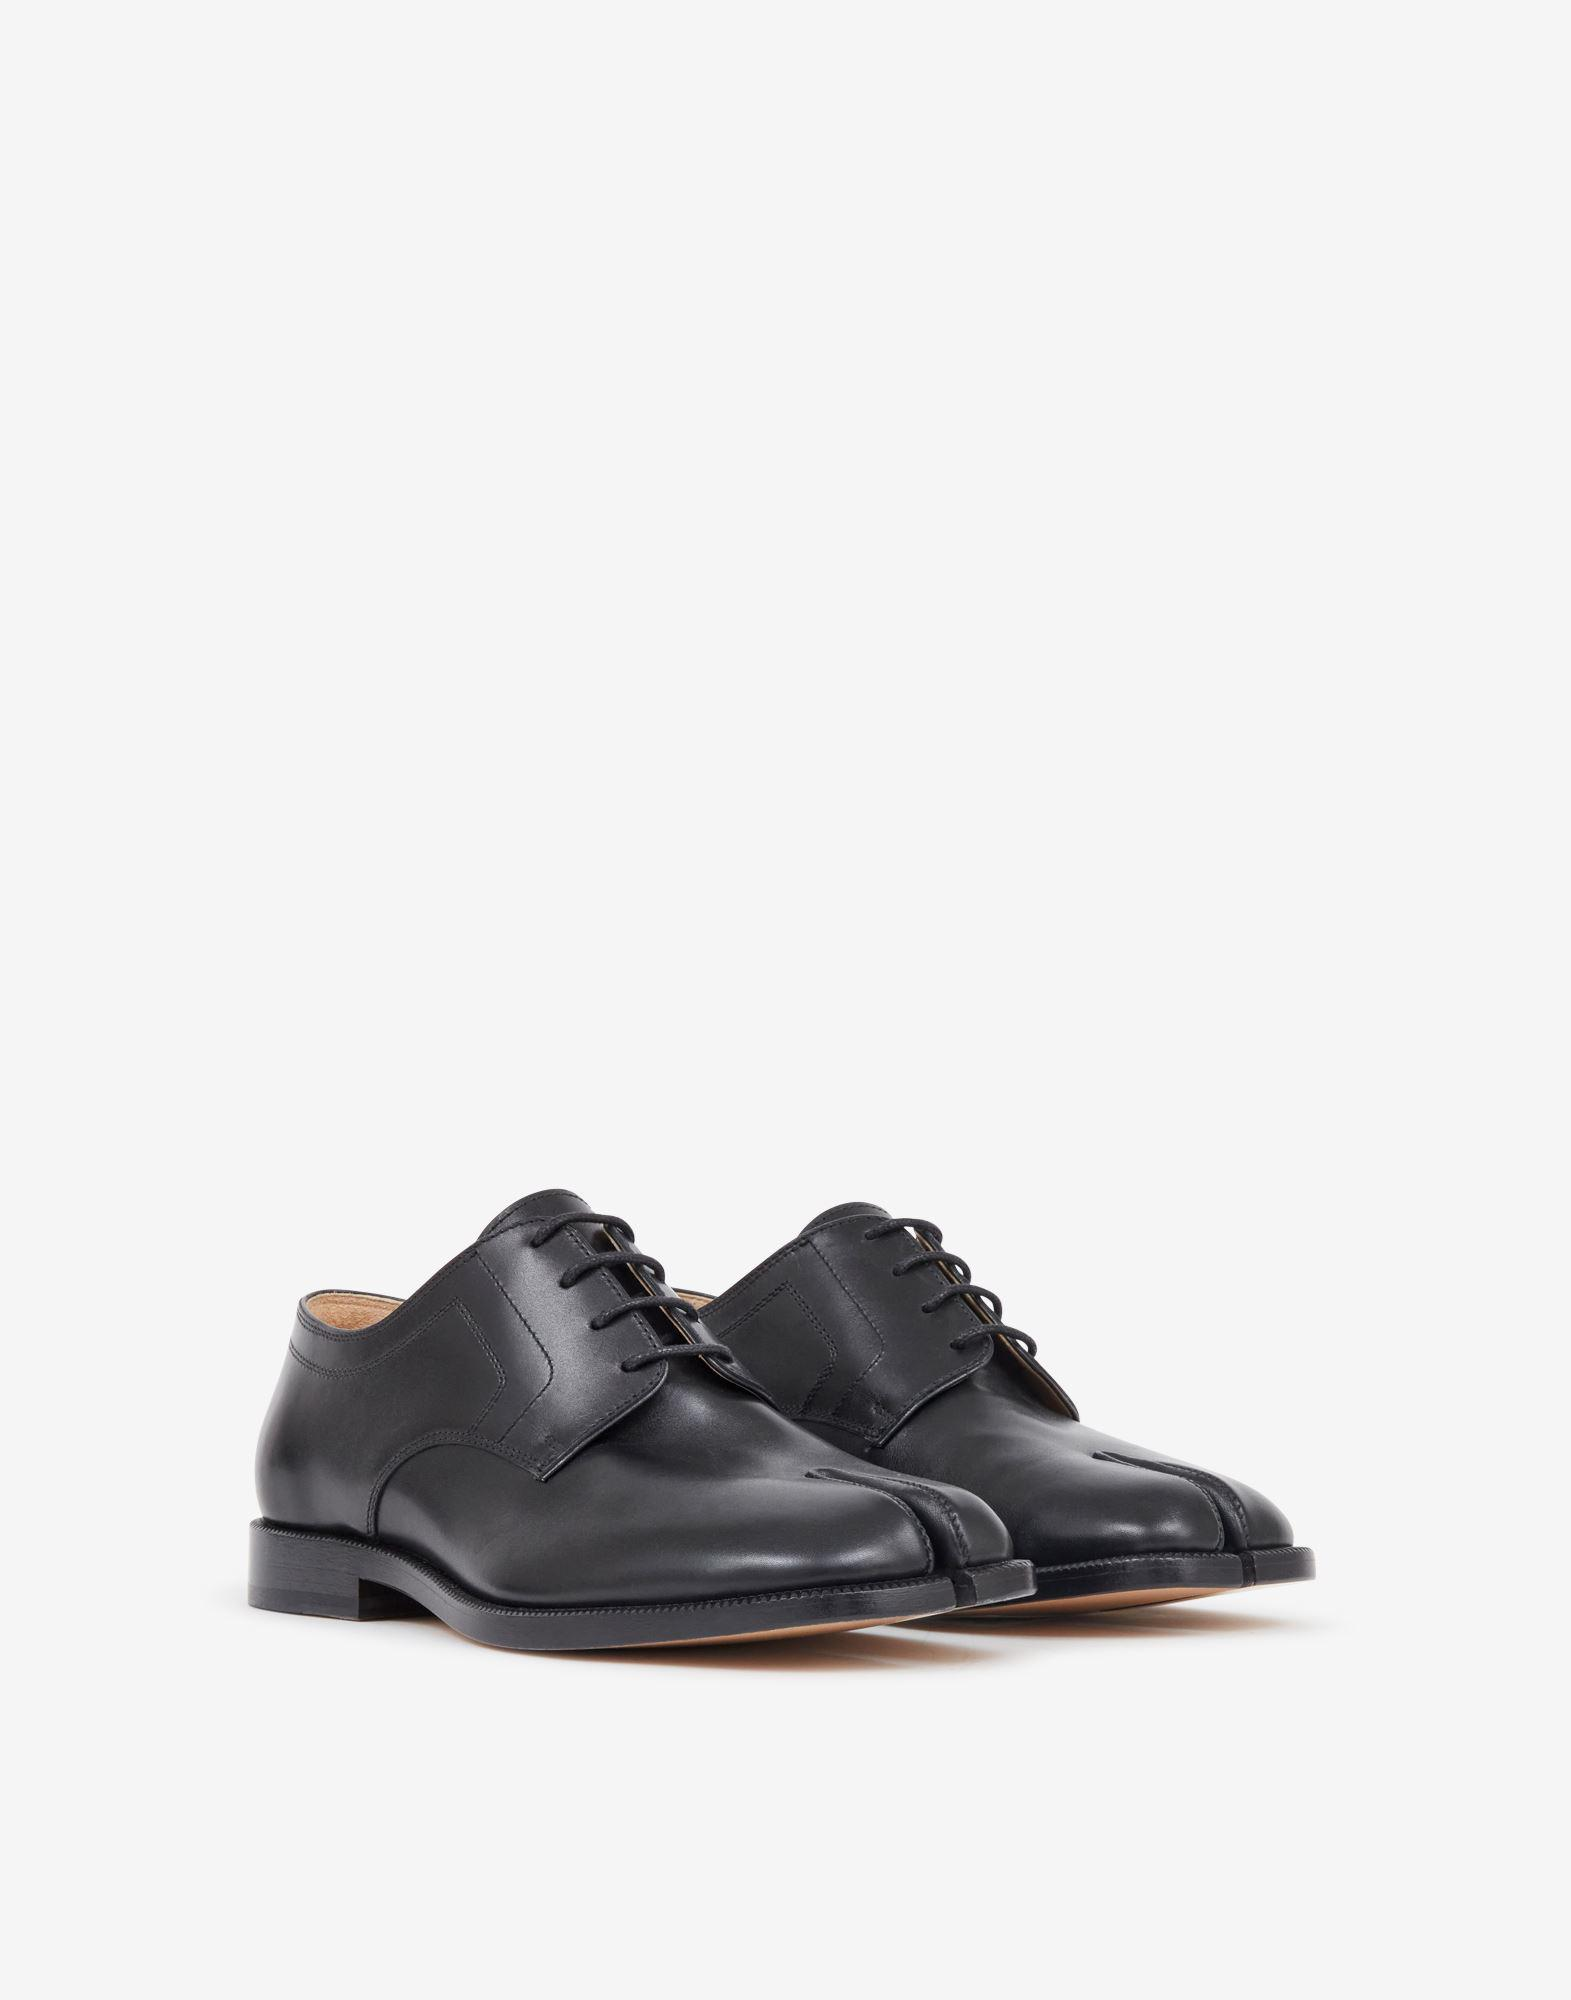 Tabi lace-up shoes 1